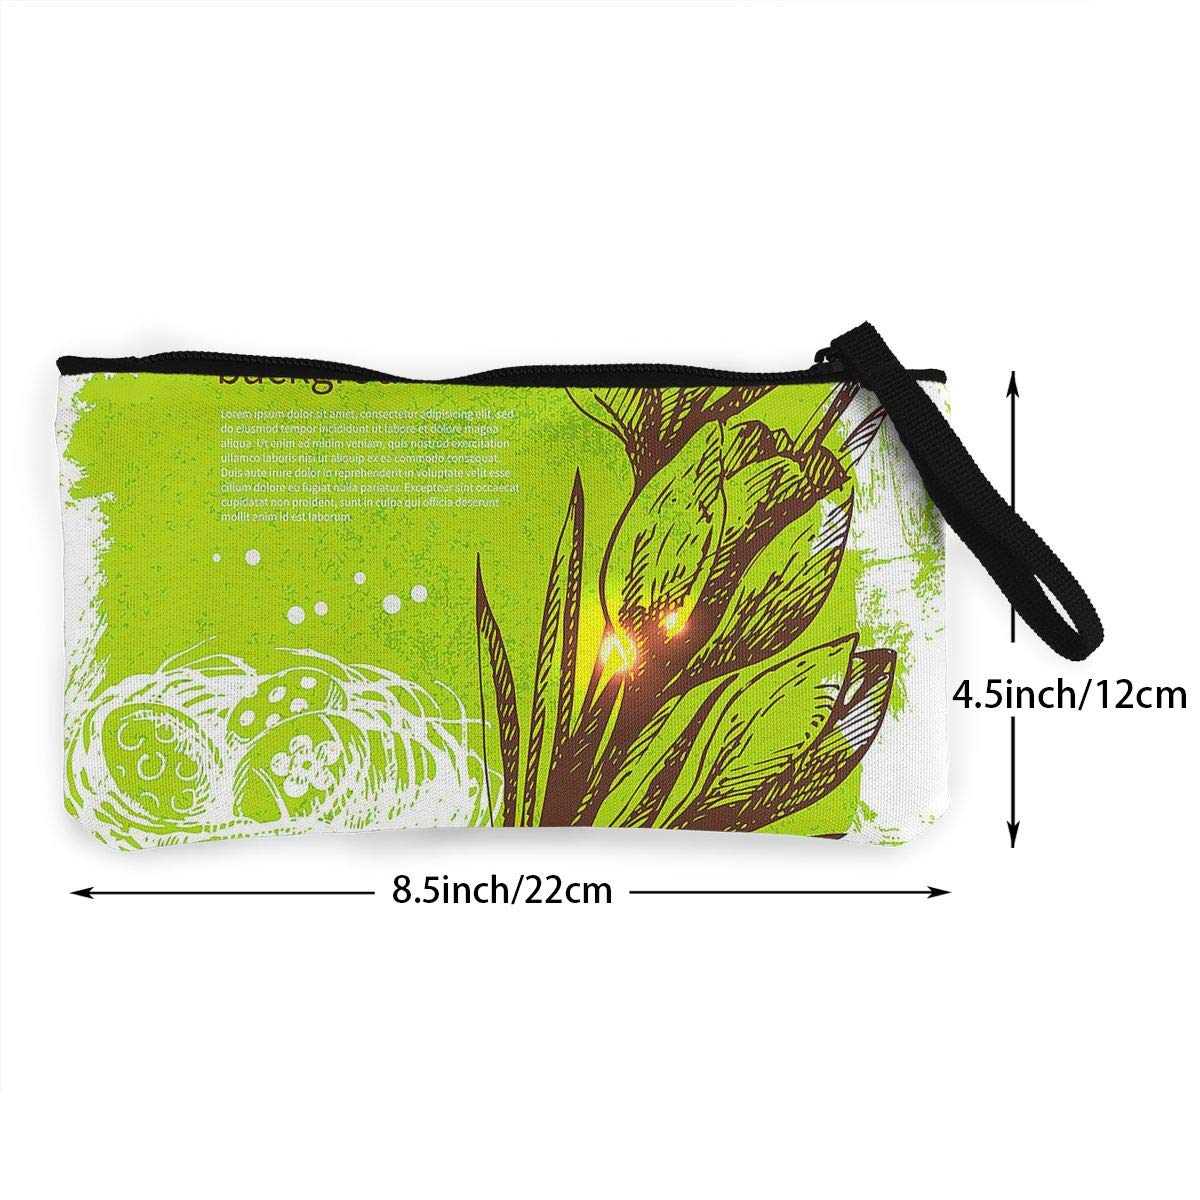 Maple Memories Easter White Lily Eggs Portable Canvas Coin Purse Change Purse Pouch Mini Wallet Gifts For Women Girls